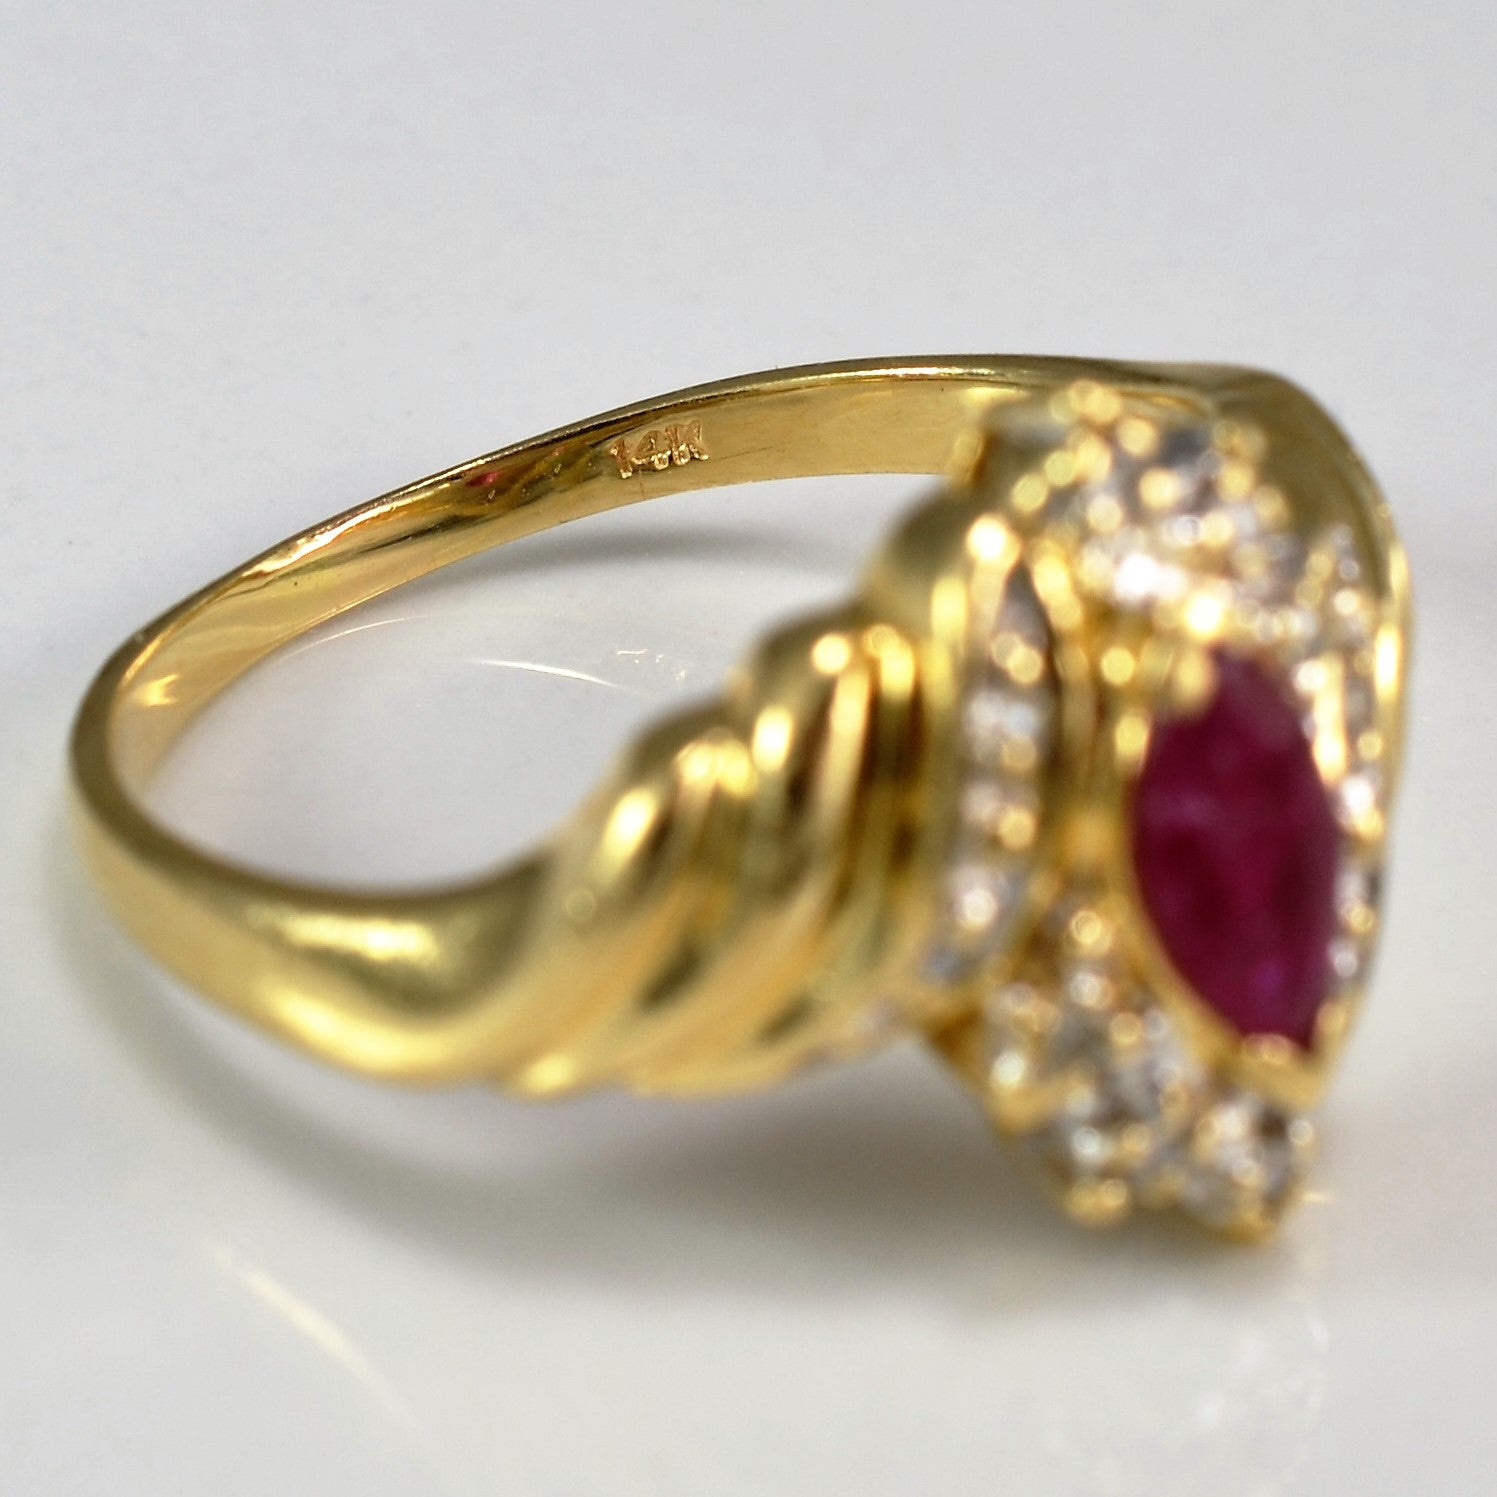 Twisted Gold Marquise Ruby Ring | 0.05 ctw, SZ 7.25 |